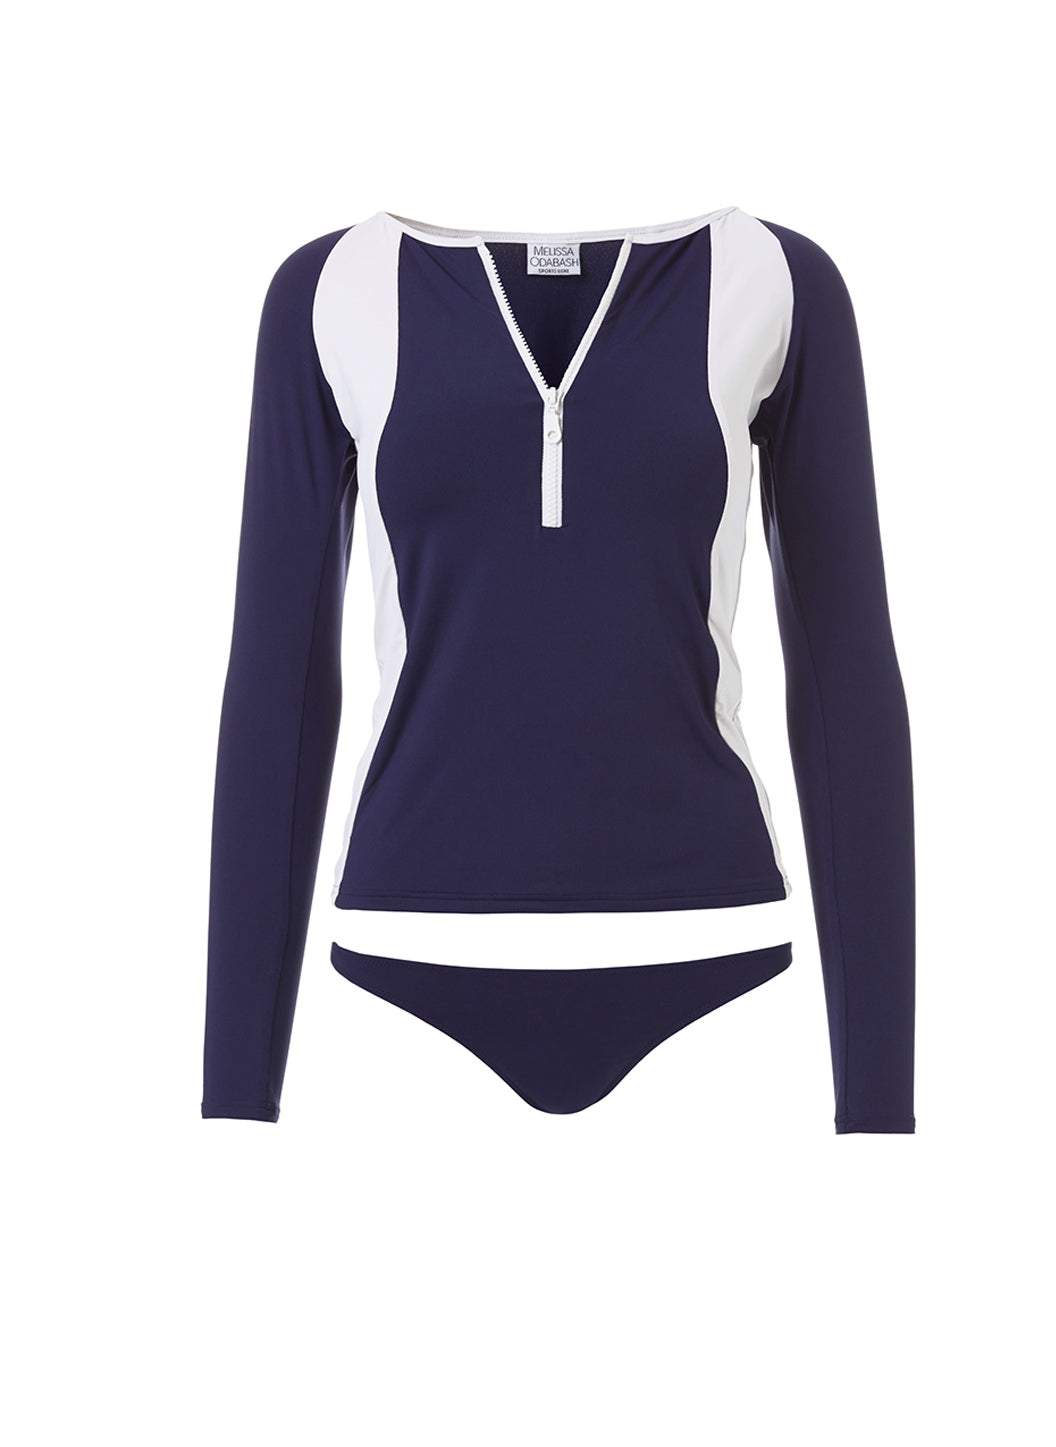 Bondi Navy White Sports Long Sleeve Rash Vest  - Melissa Odabash Navy Bikinis